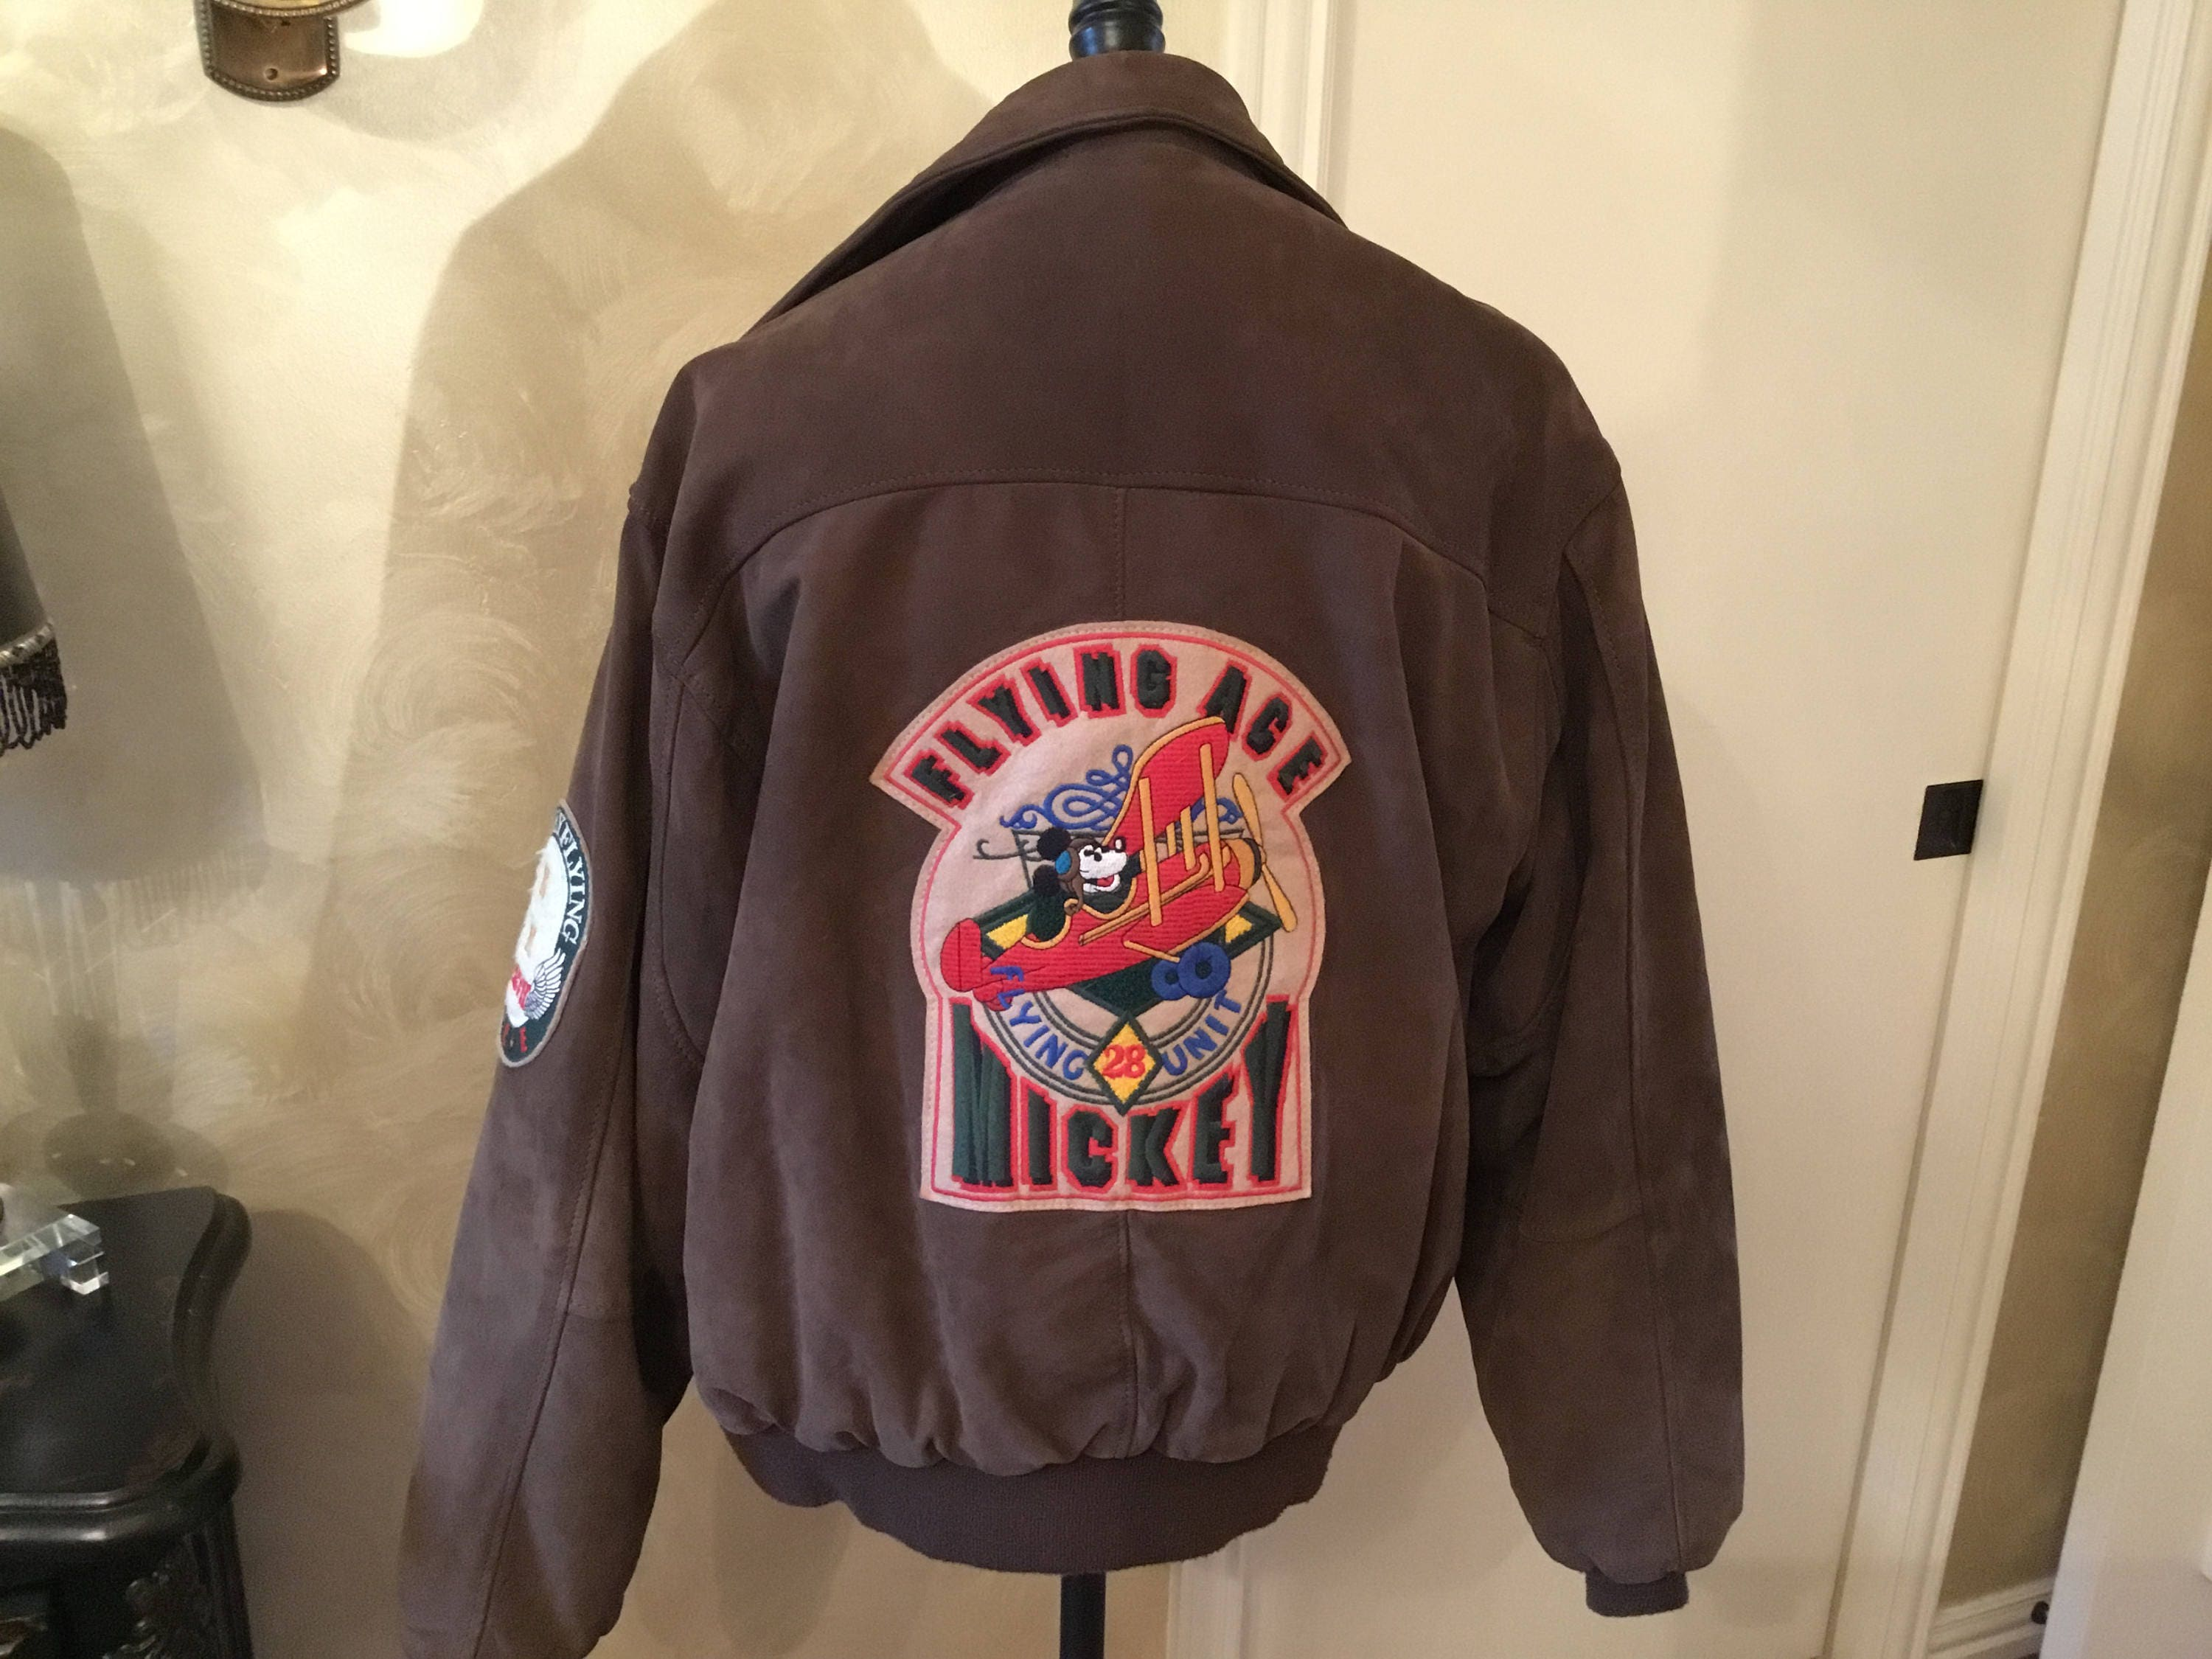 Vintage flying ACE Mickey Mouse jacket size large suede leather jacket and matching ball cap with suede bill 8hB9Wfi